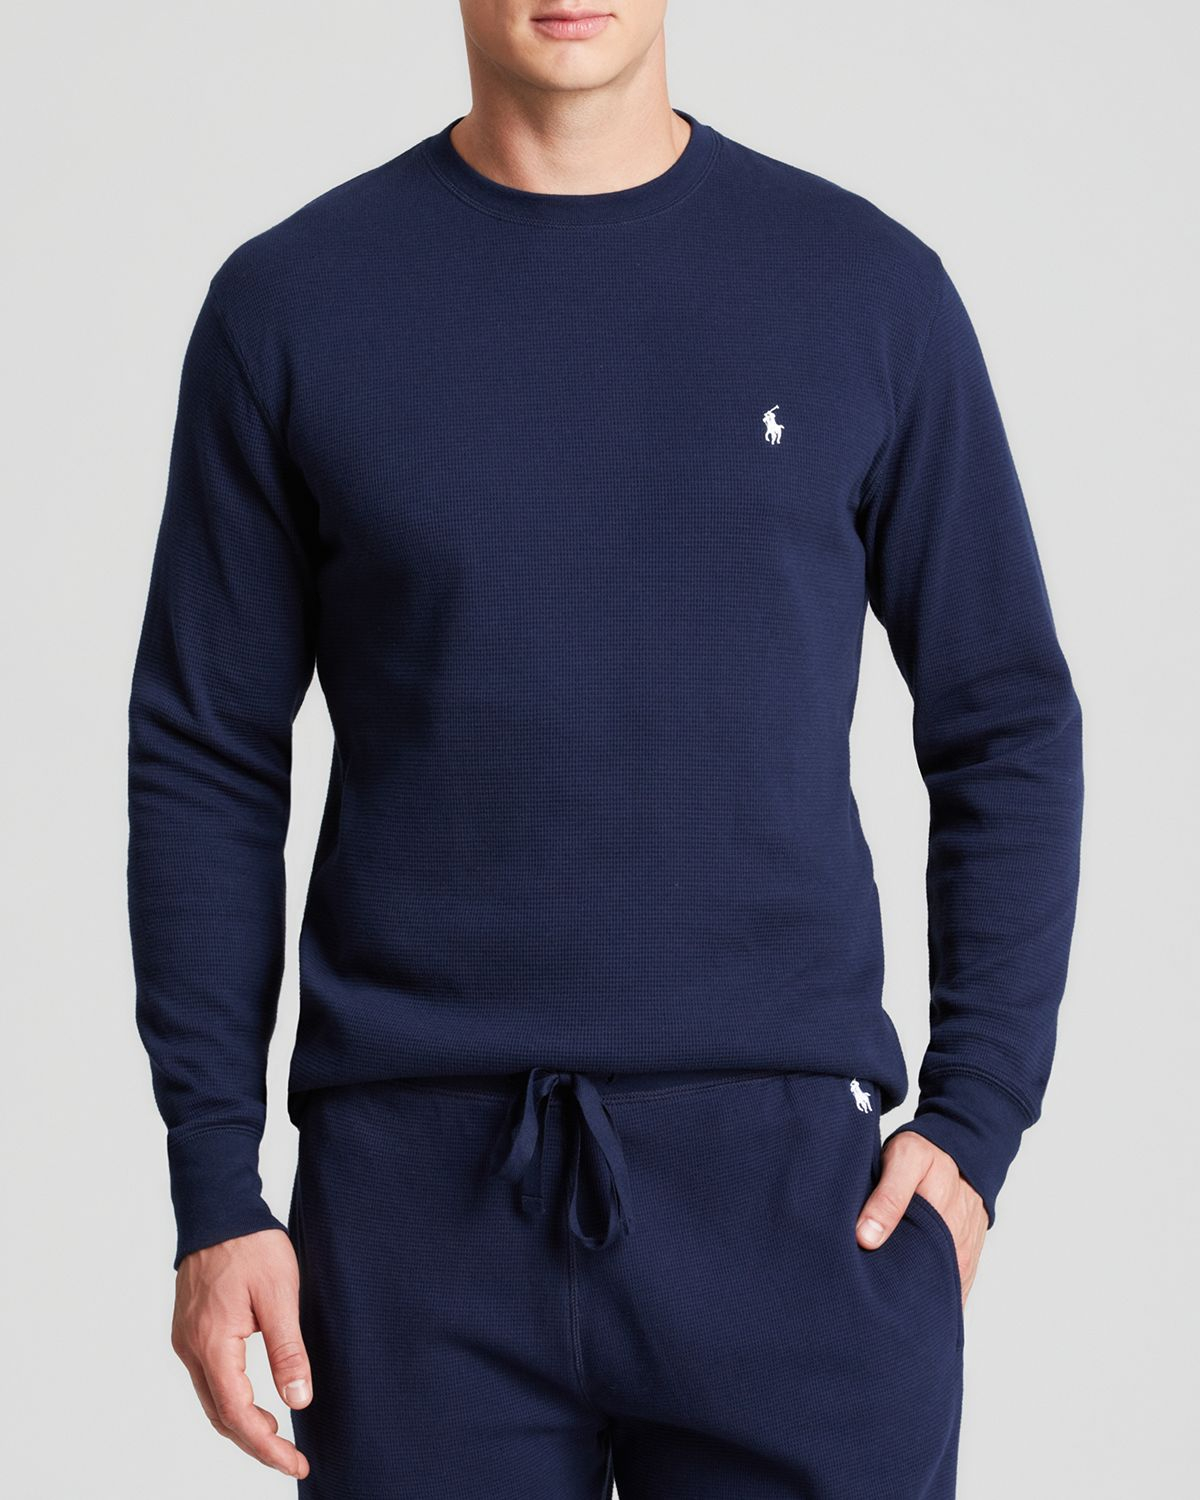 ralph lauren thermal long sleeve tee in blue for men navy white lyst. Black Bedroom Furniture Sets. Home Design Ideas